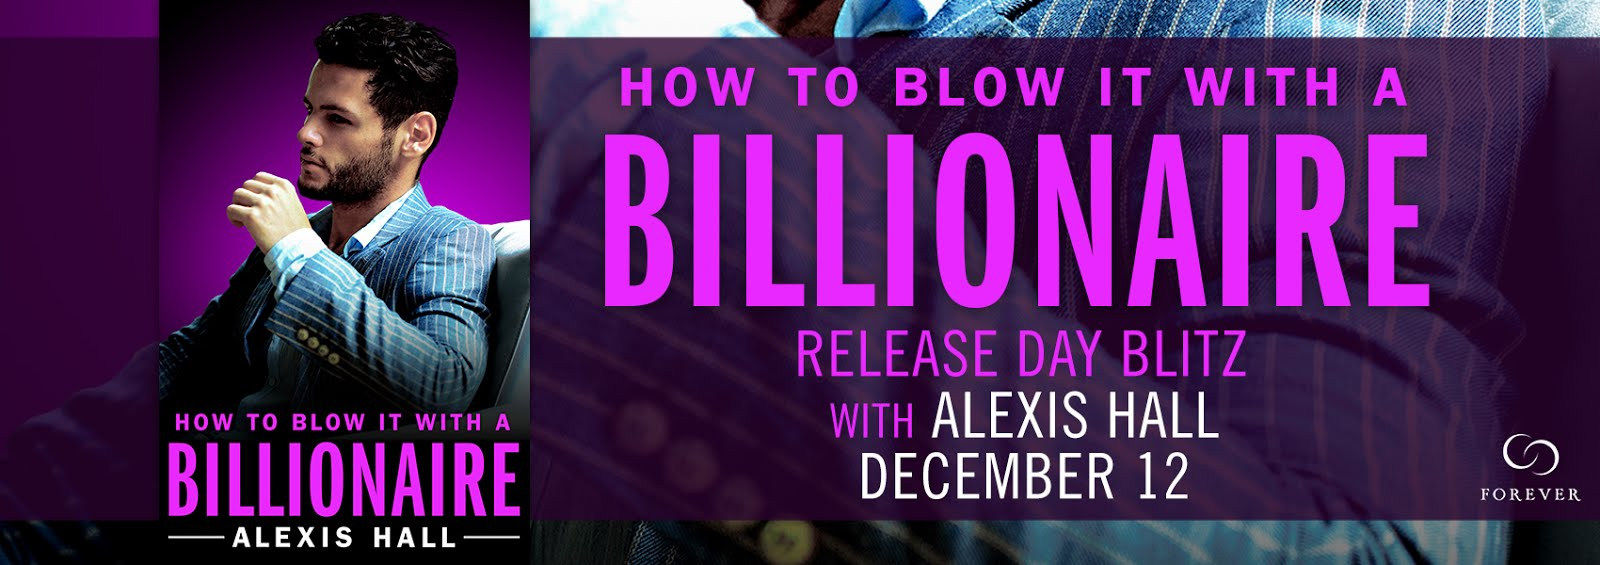 How To Blow It With A Billionaire Release Day Blast